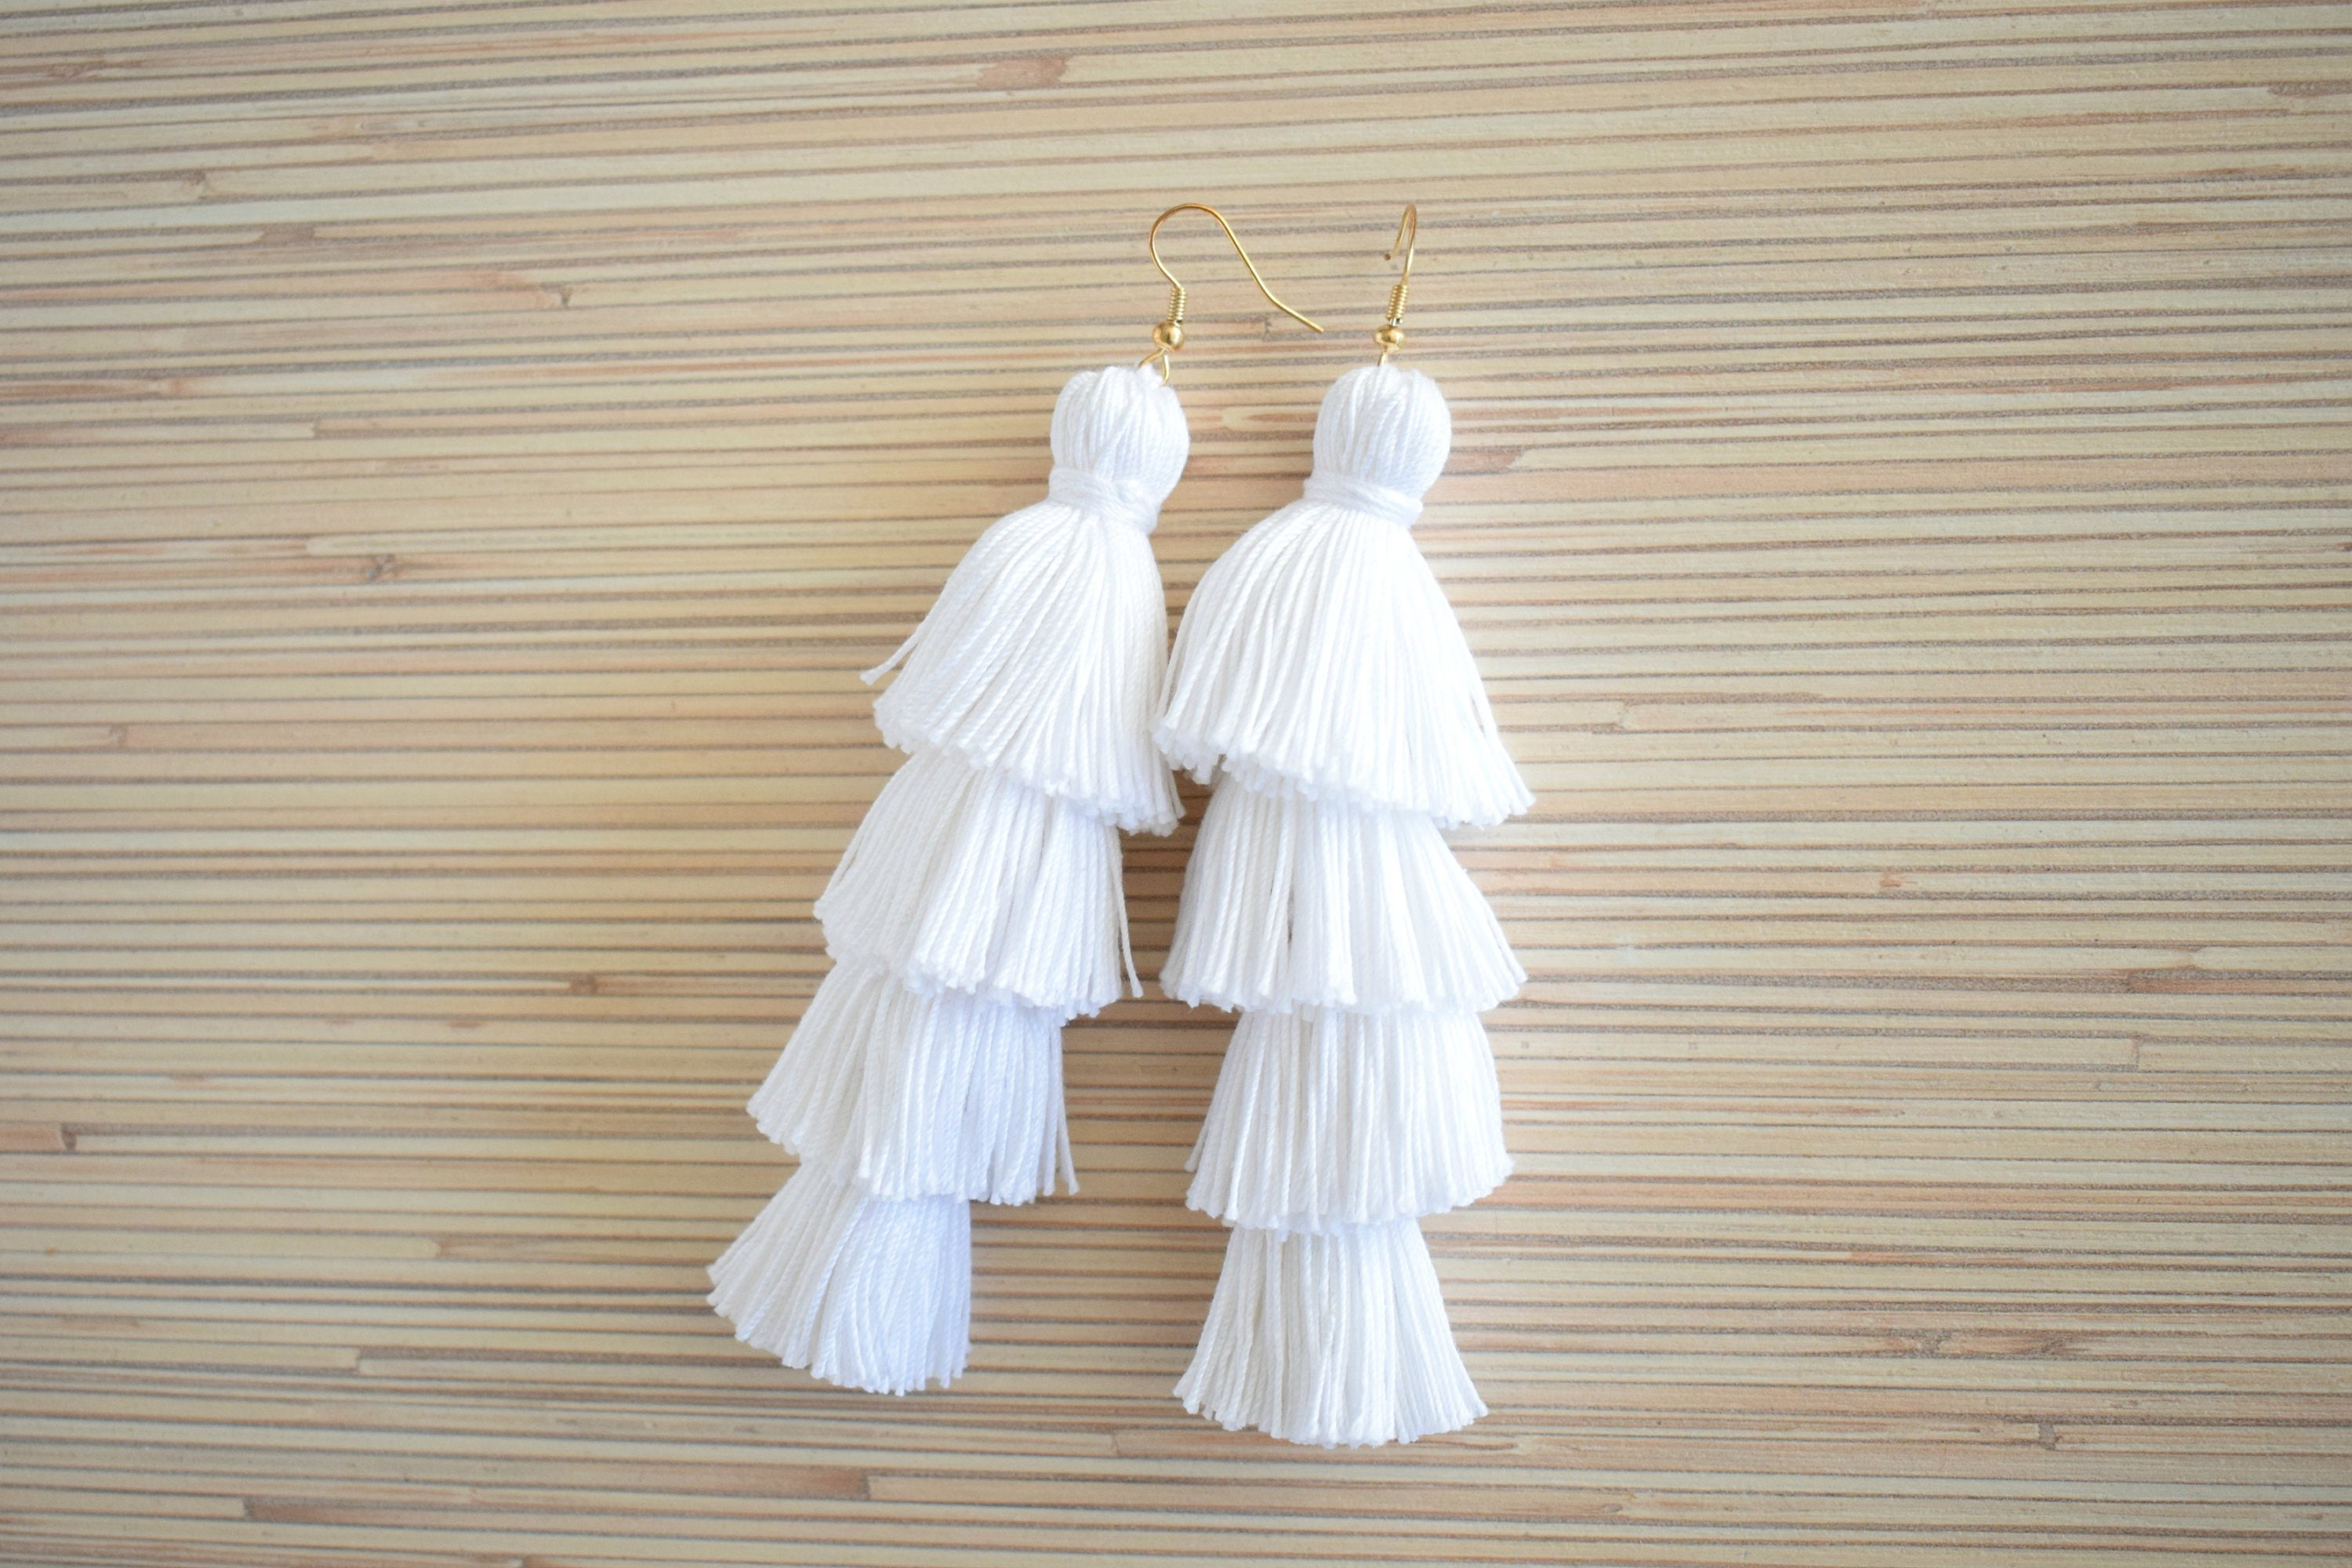 41f7549a3144fb White Tassel Earrings Layered Tassel Earrings Tiered Tassel | Etsy